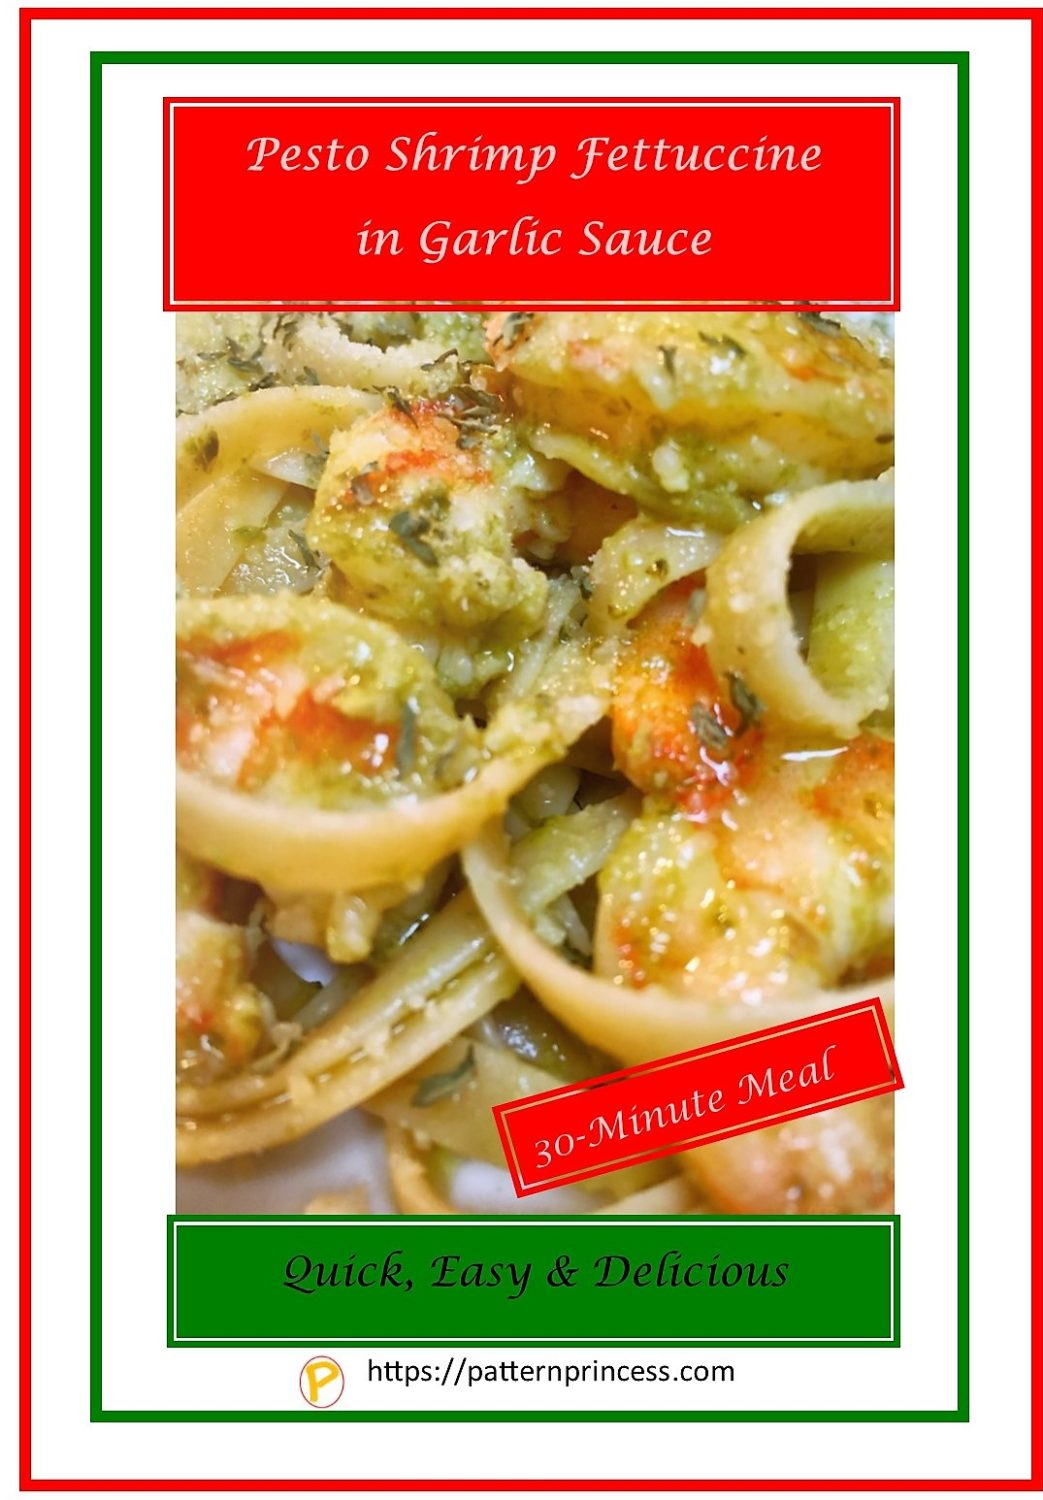 Pesto Shrimp Fettuccine in Garlic Sauce 1